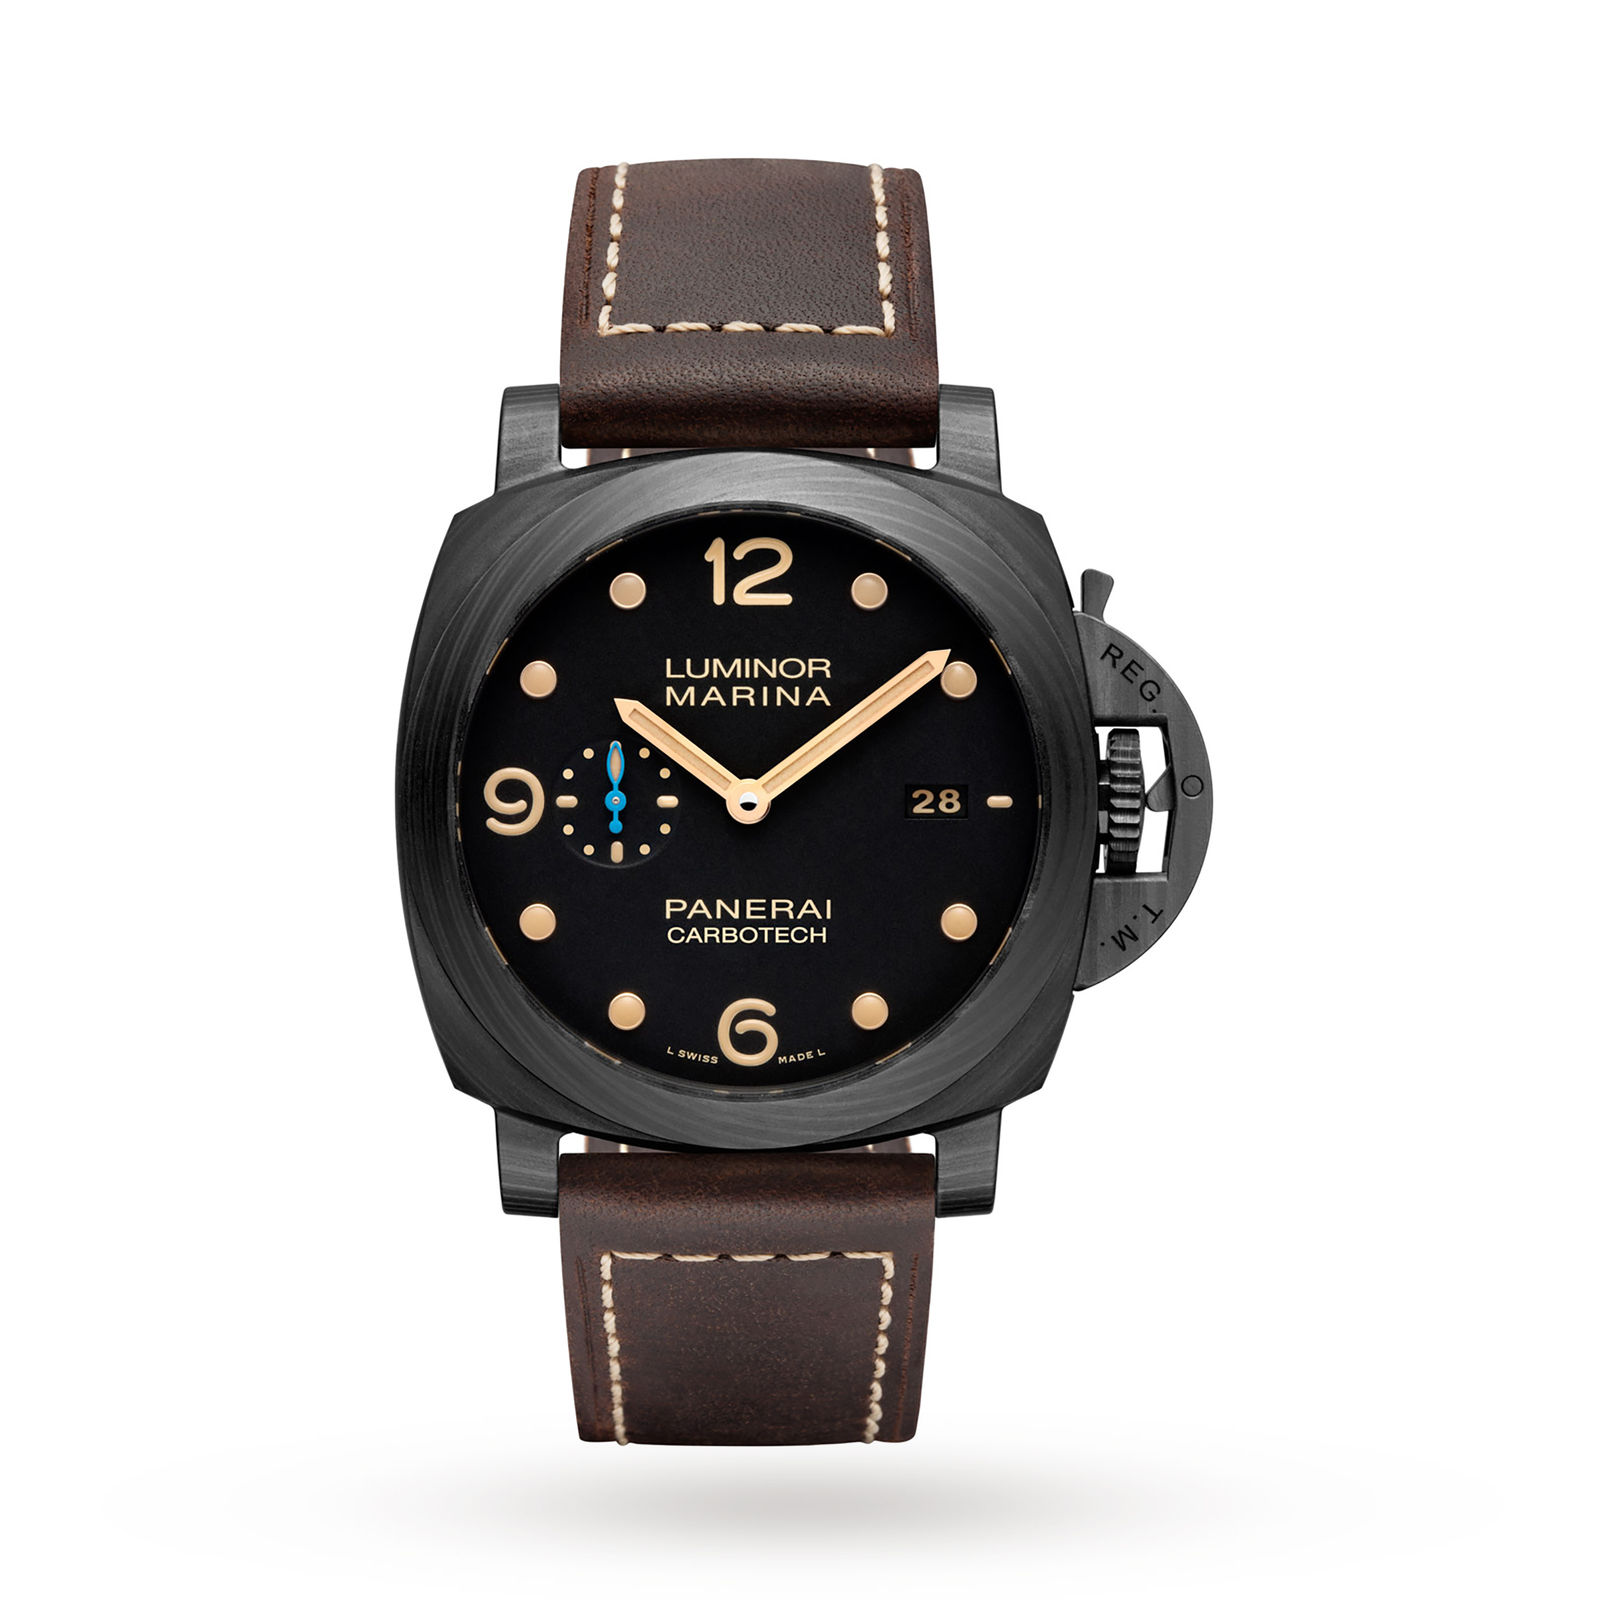 Image result for panerai luminor